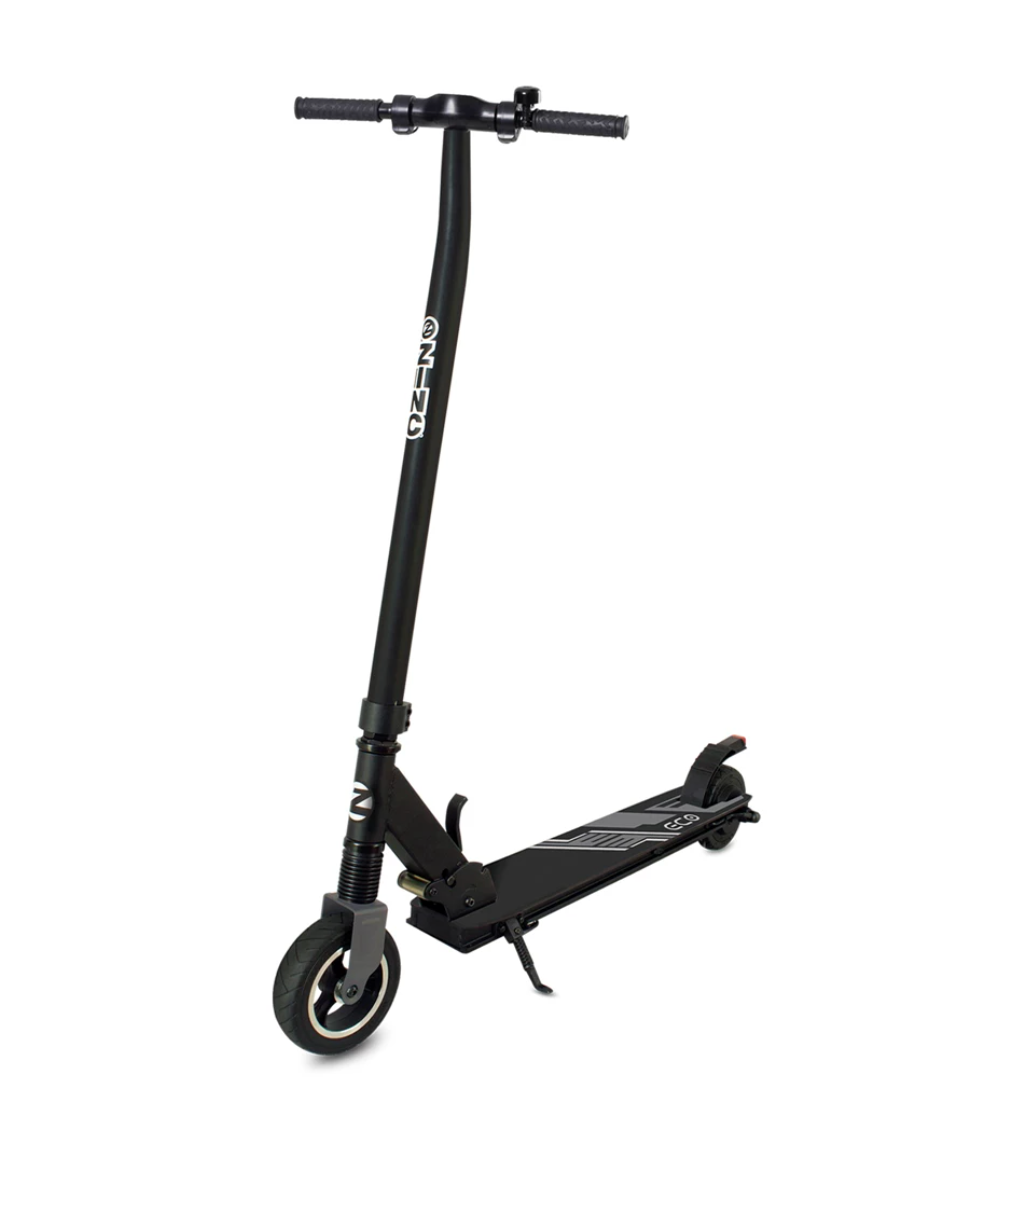 Zinc Eco Electric Scooter in Black